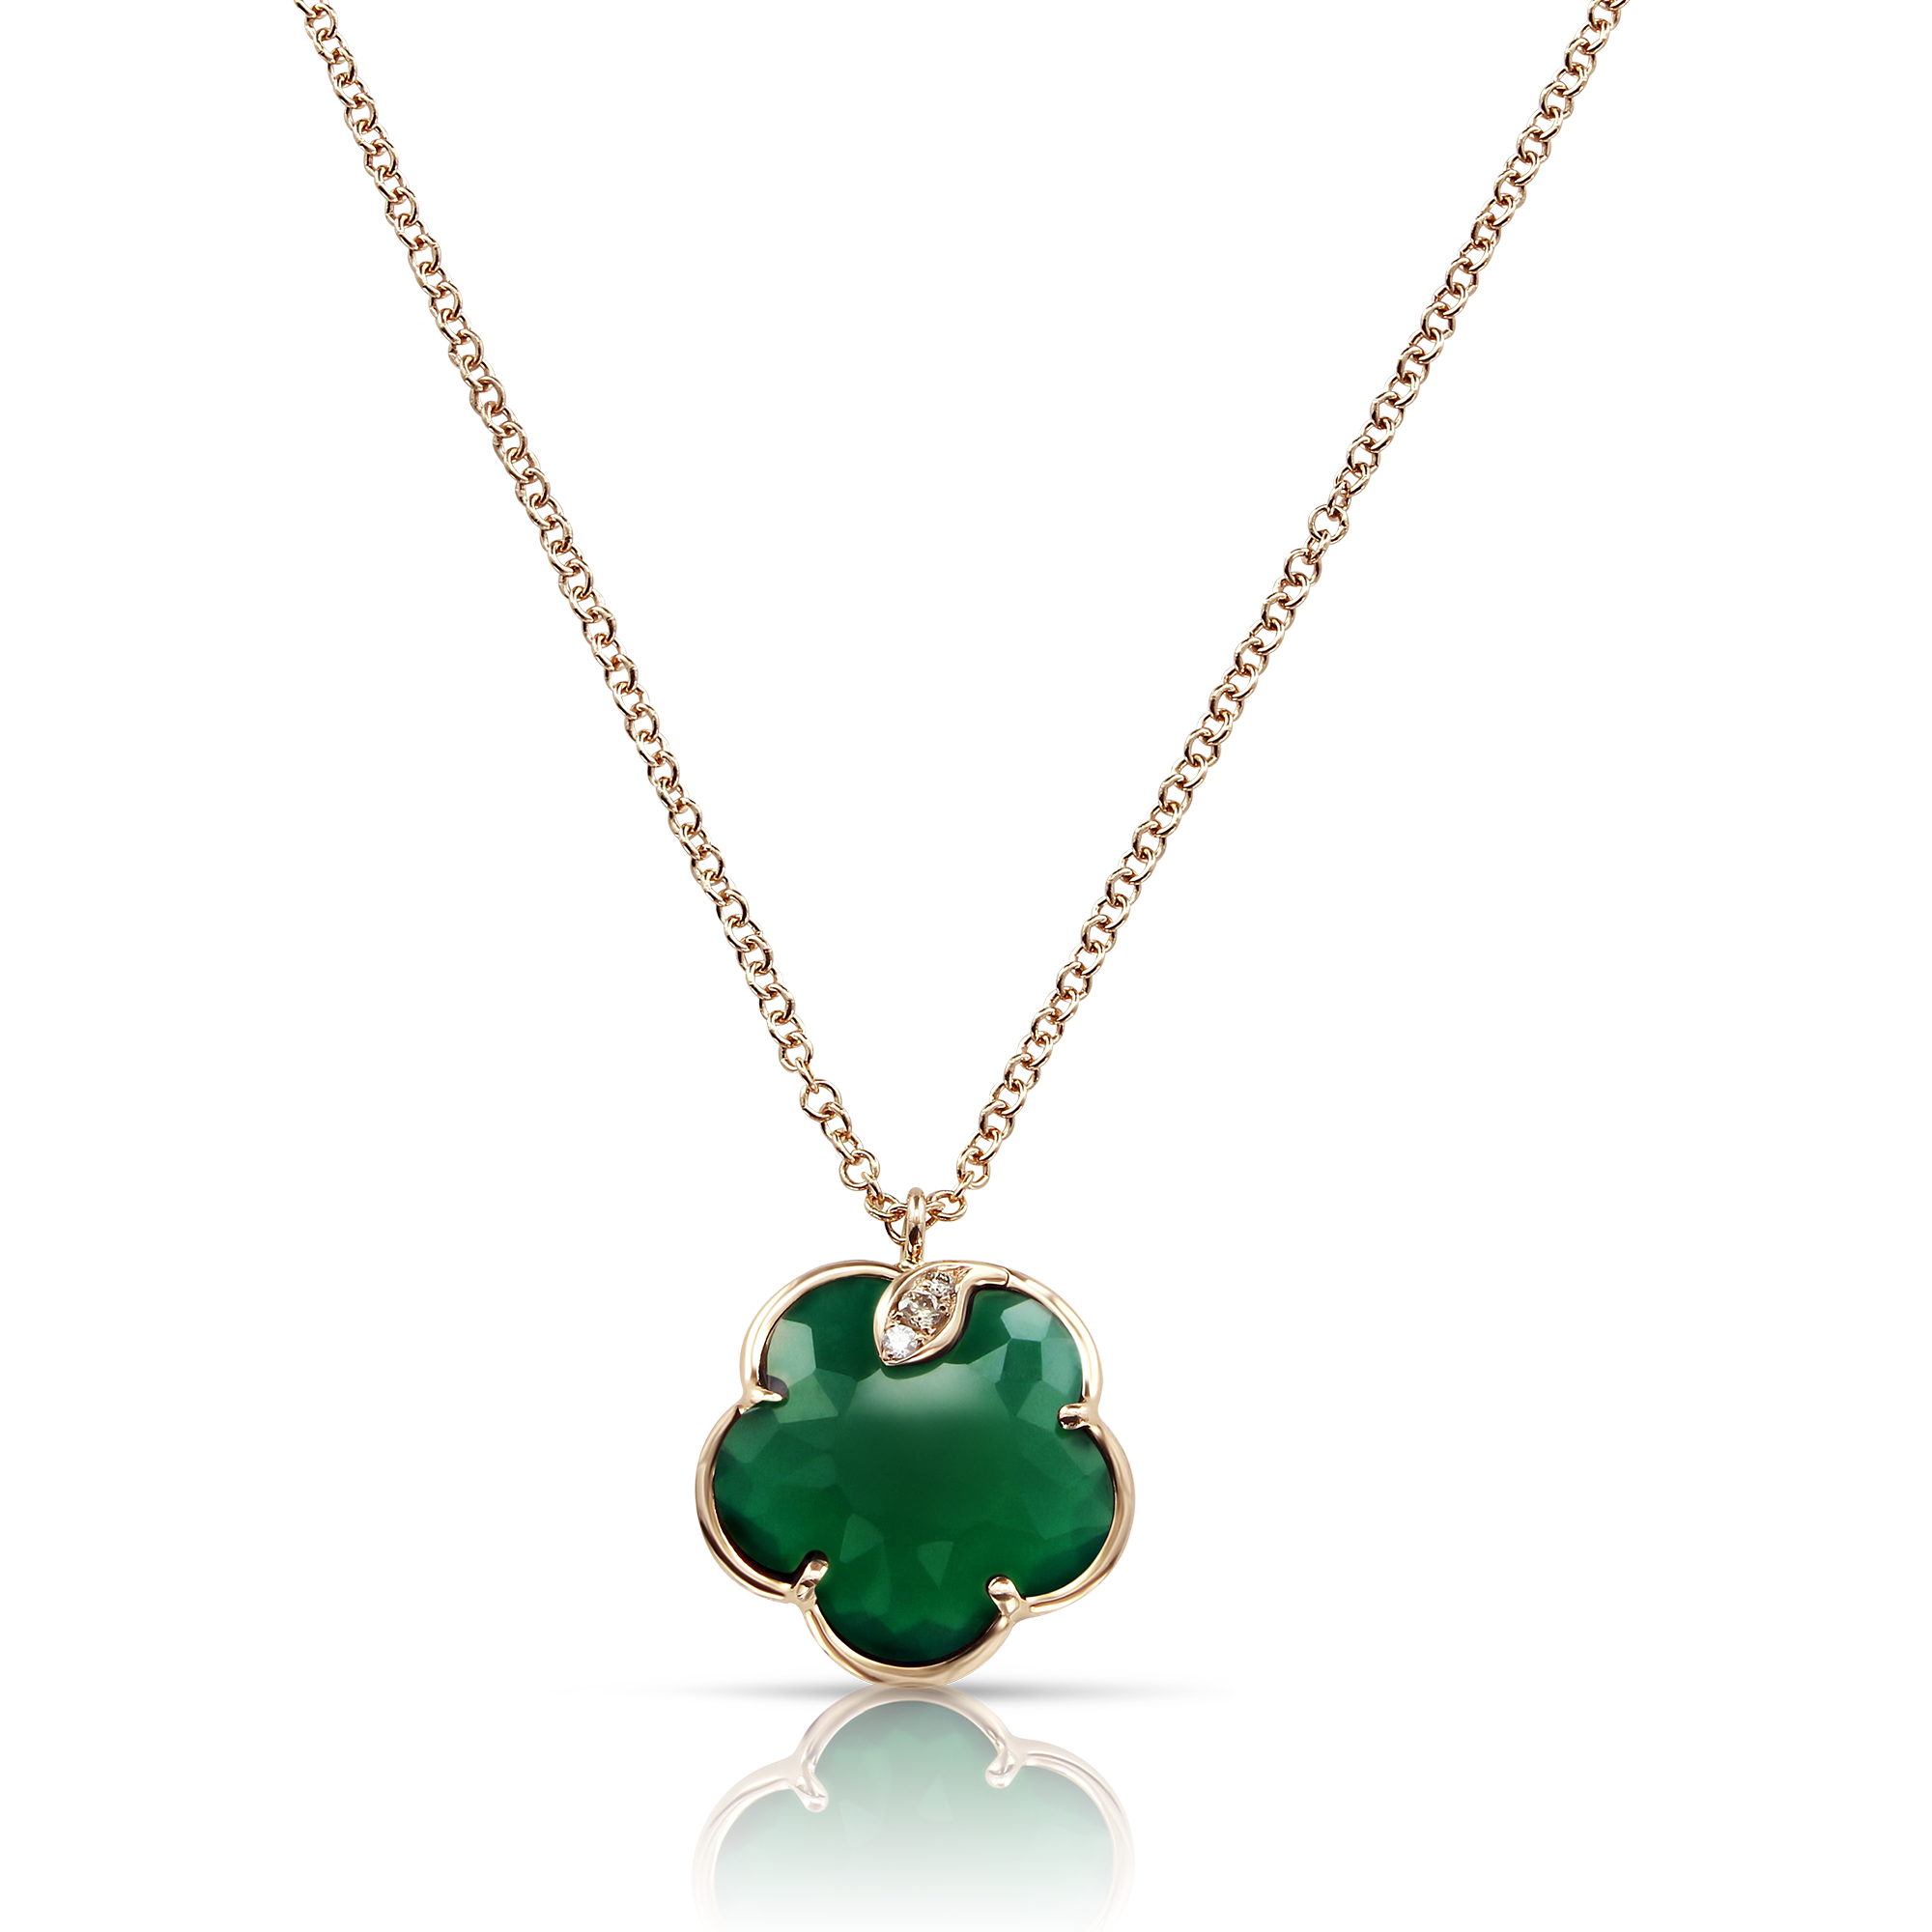 NEW 18k Rose Gold Petit Joli Necklace with Green Agate, White and Champagne Diamonds